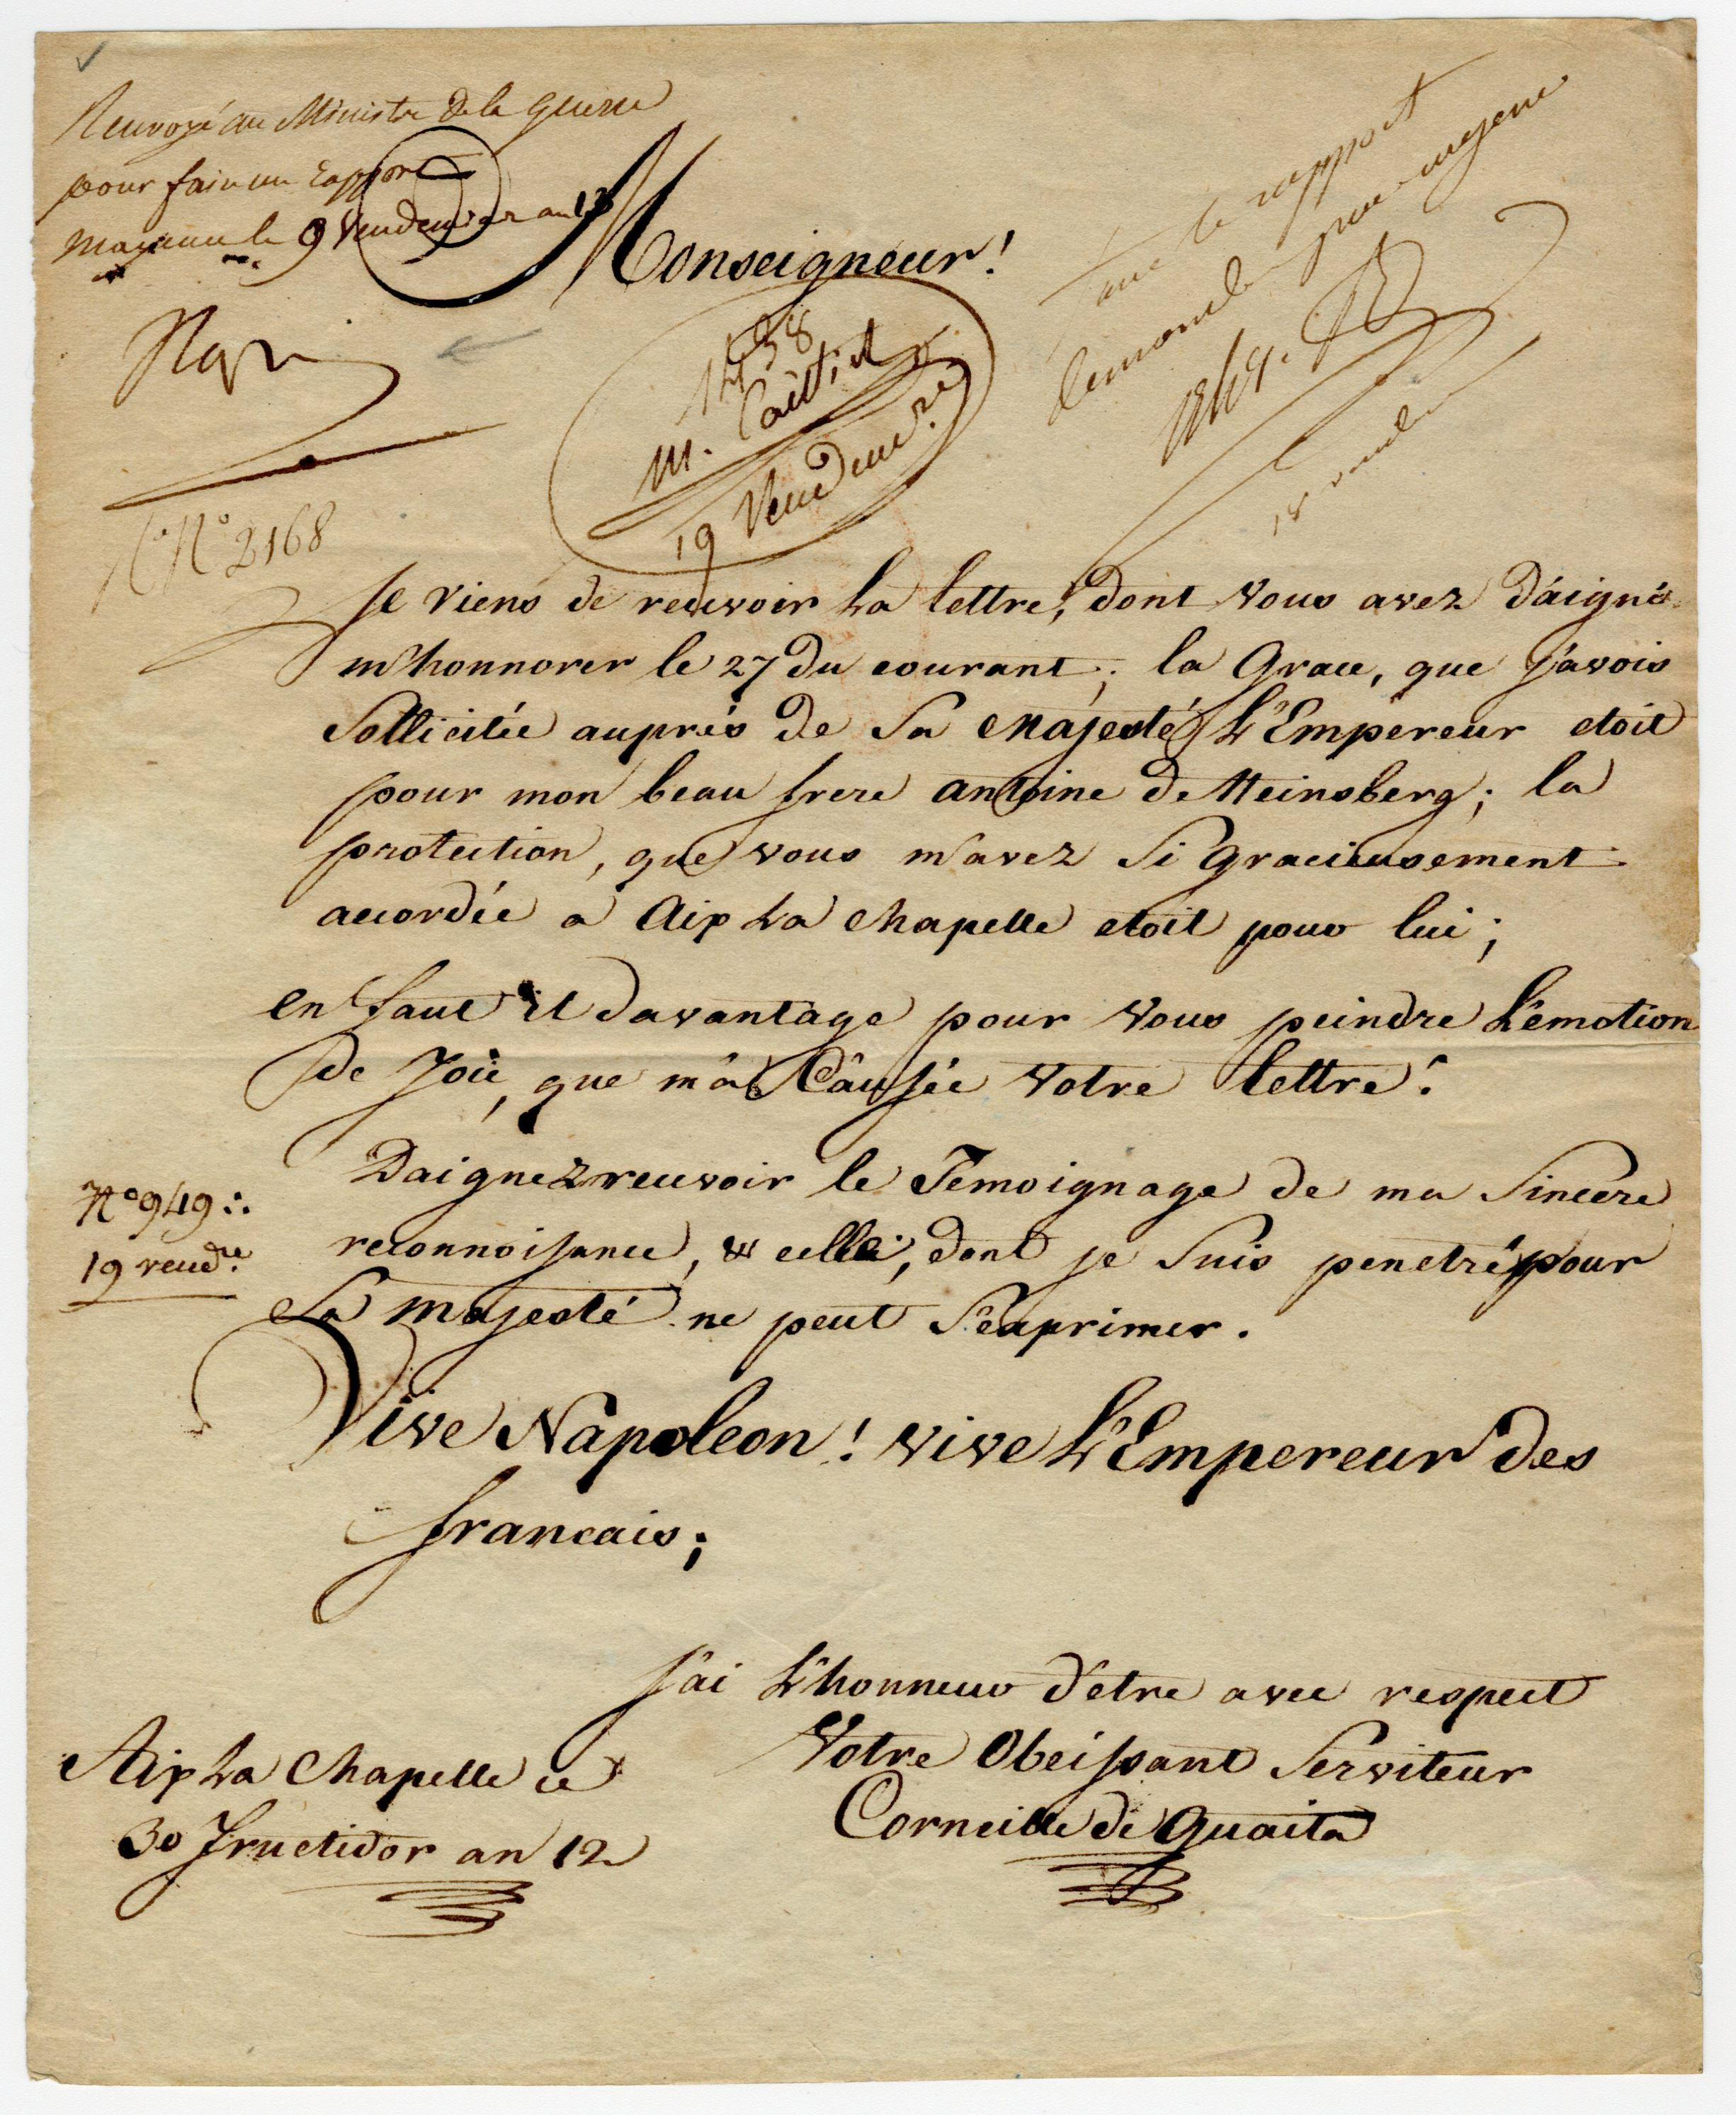 "Napoleon & War Minister Berthier Gorgeous Signed Letter For Important German with Phrase ""Long live Napoleon! Long live the Emperor of the French"""